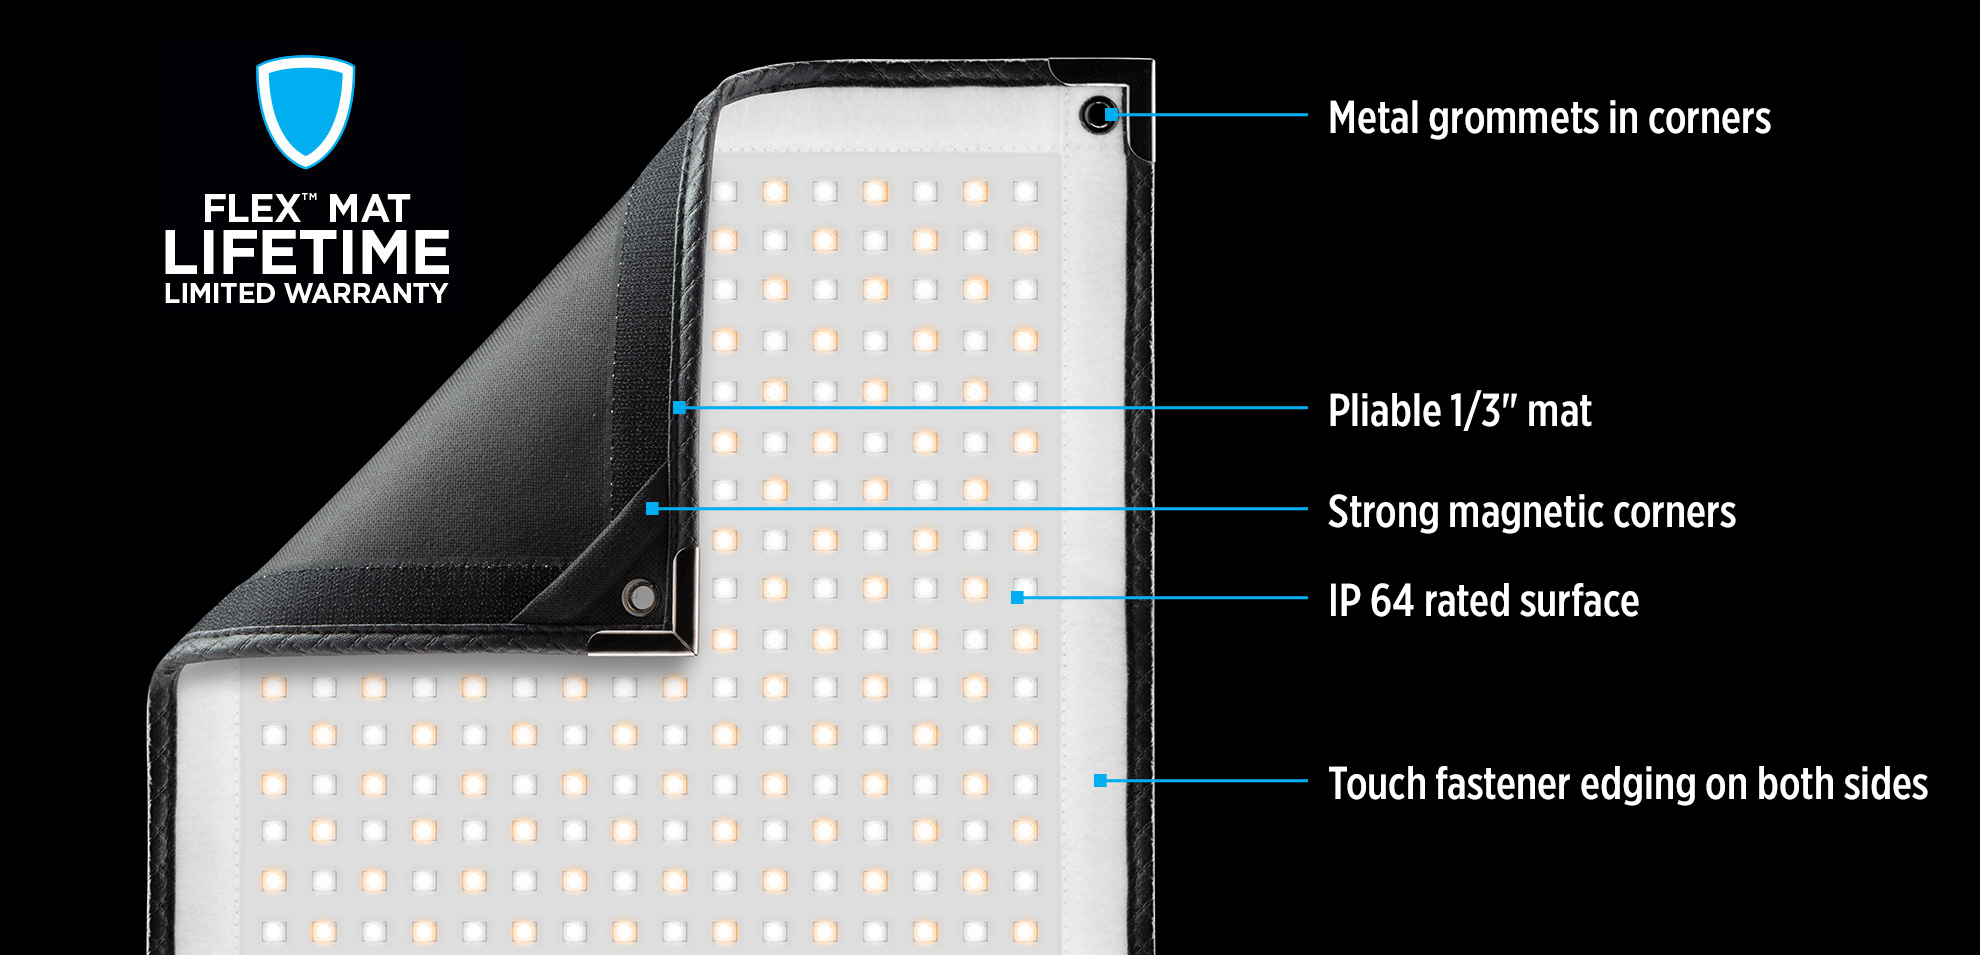 Flex Cine LED Mat Features for Filmmakers